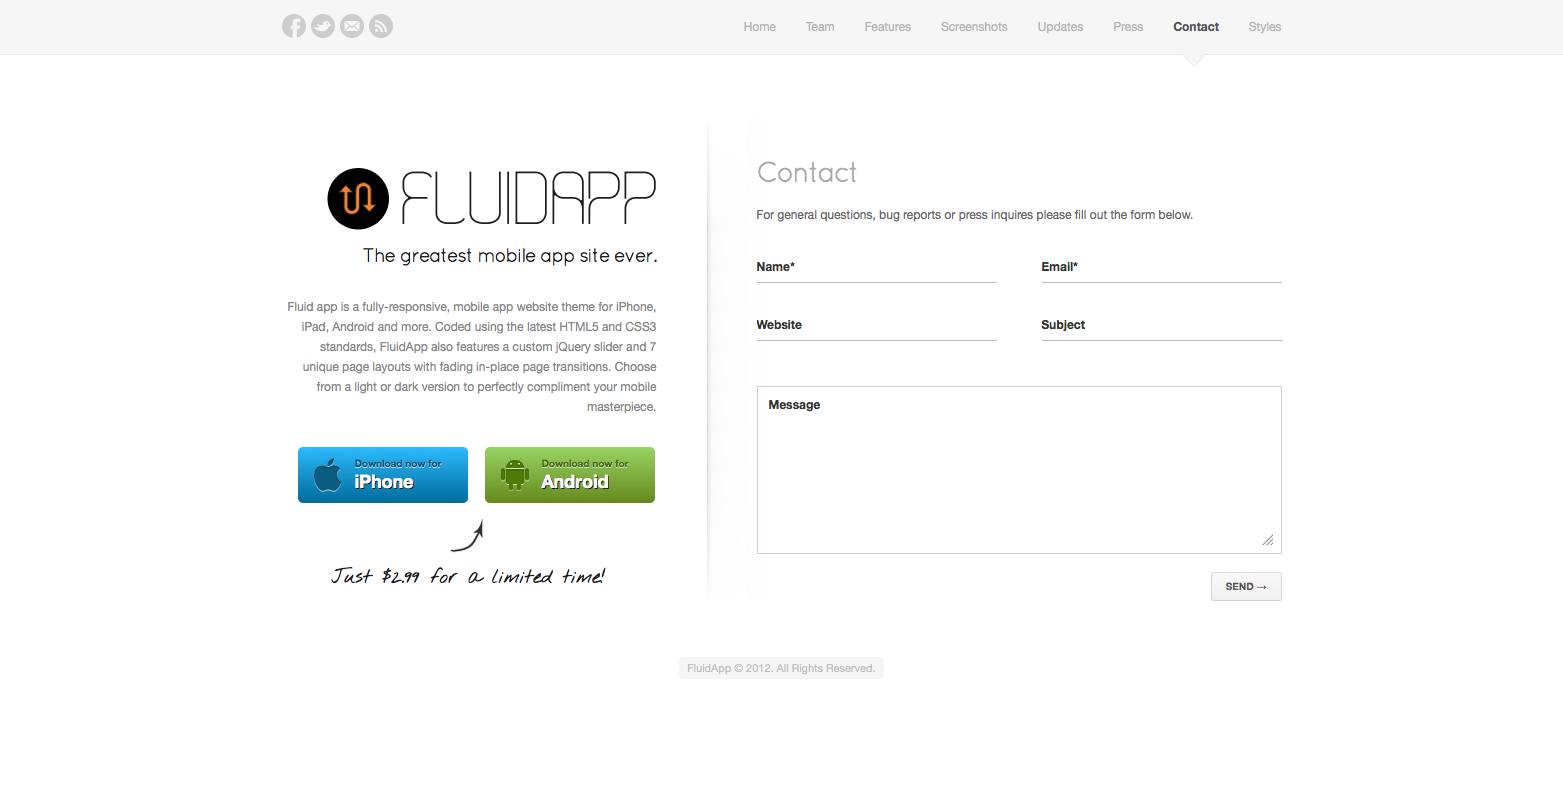 FluidApp - Responsive Mobile App Website Template - Contact - Fully working contact form with validation.